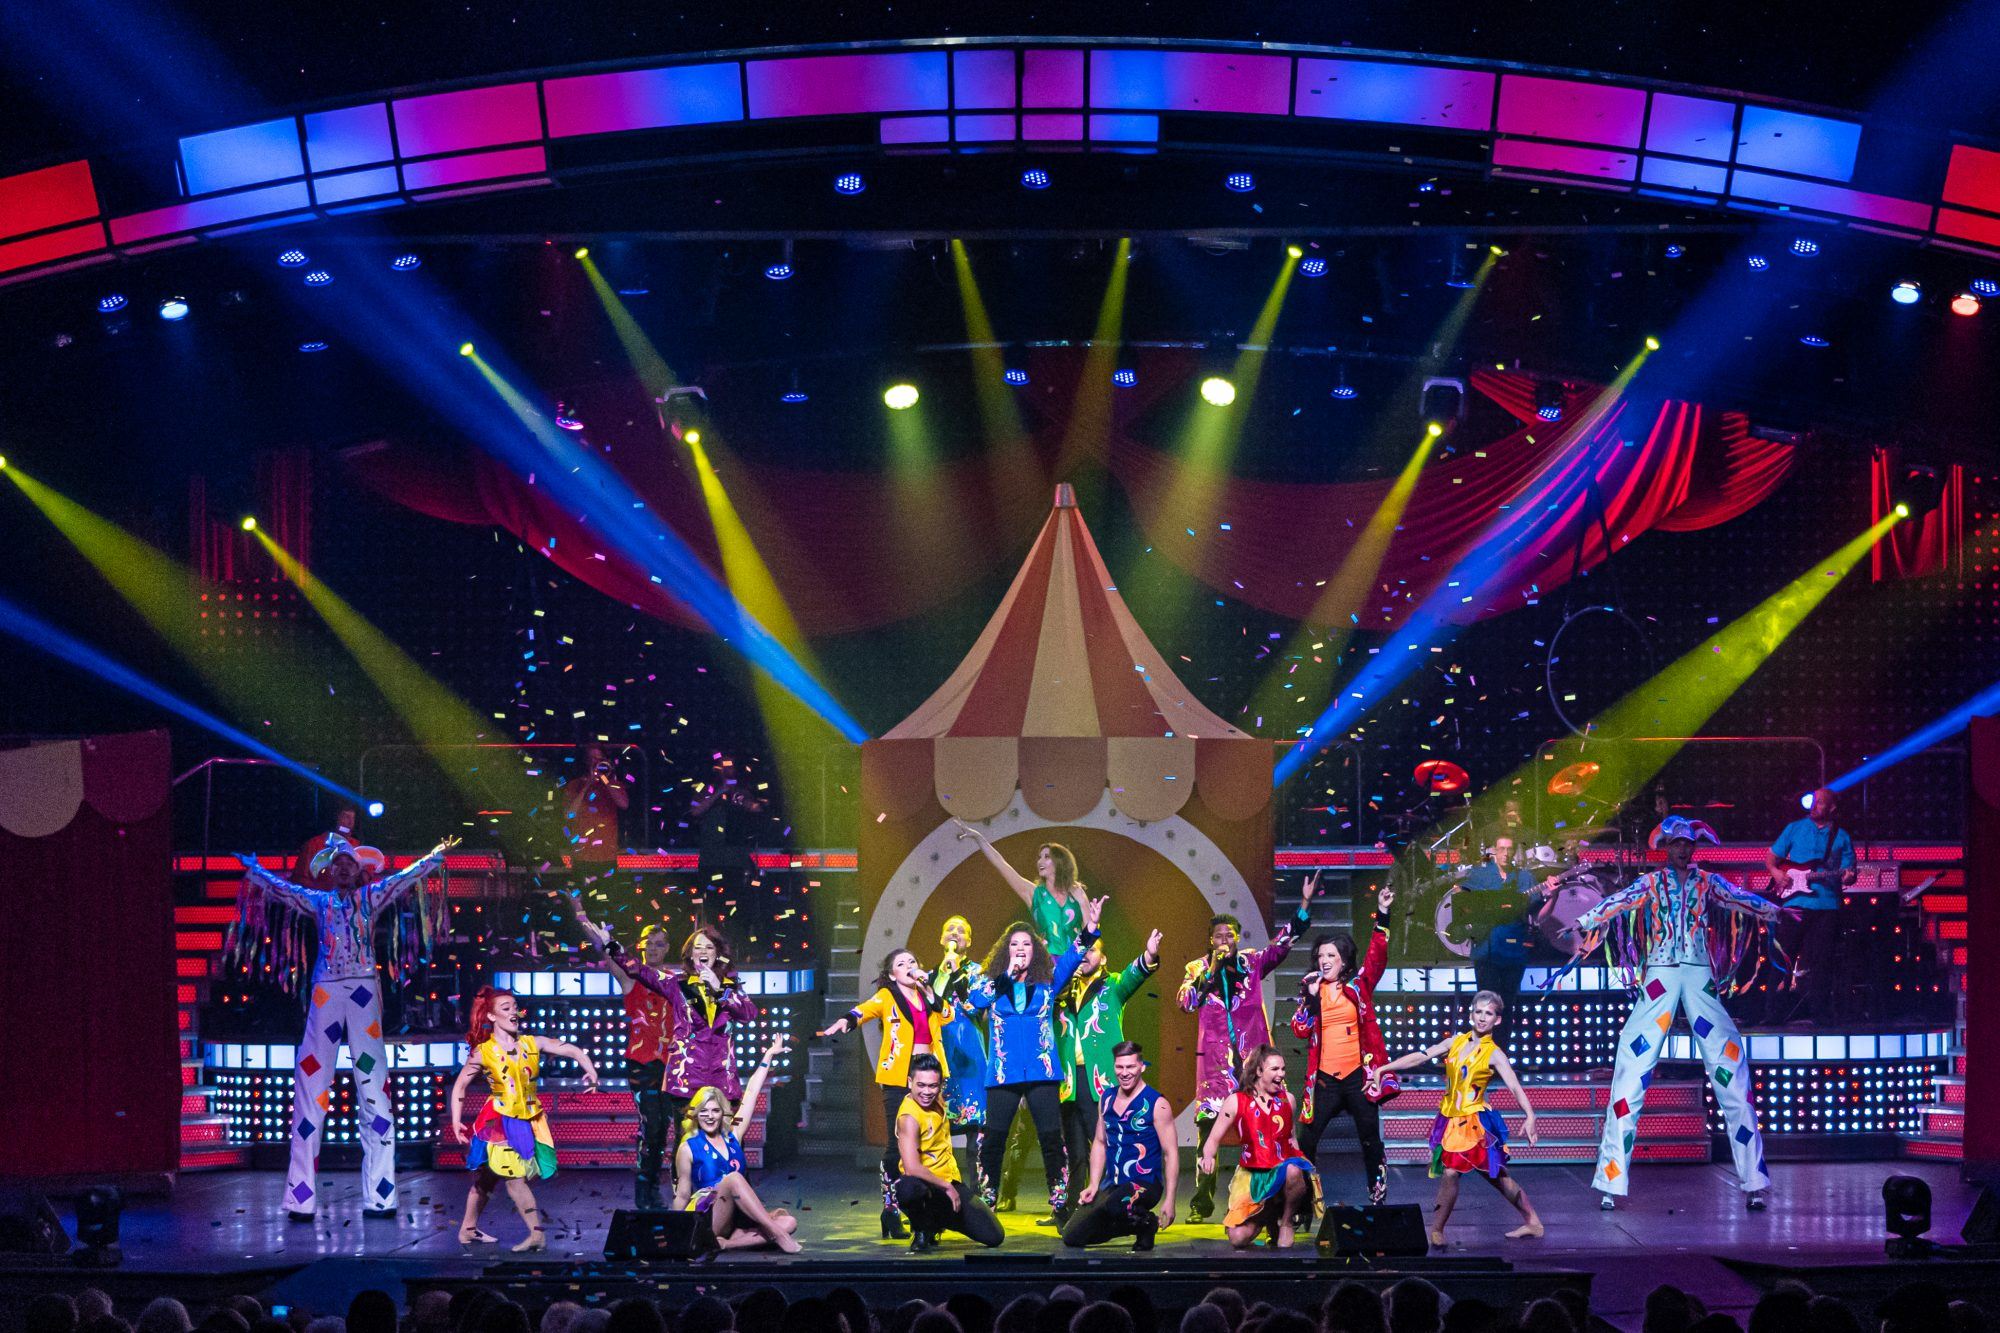 Dollywood's Smoky Mountain Opry Is the Nostalgic Variety Show You Need to See in Pigeon Forge, Tennessee